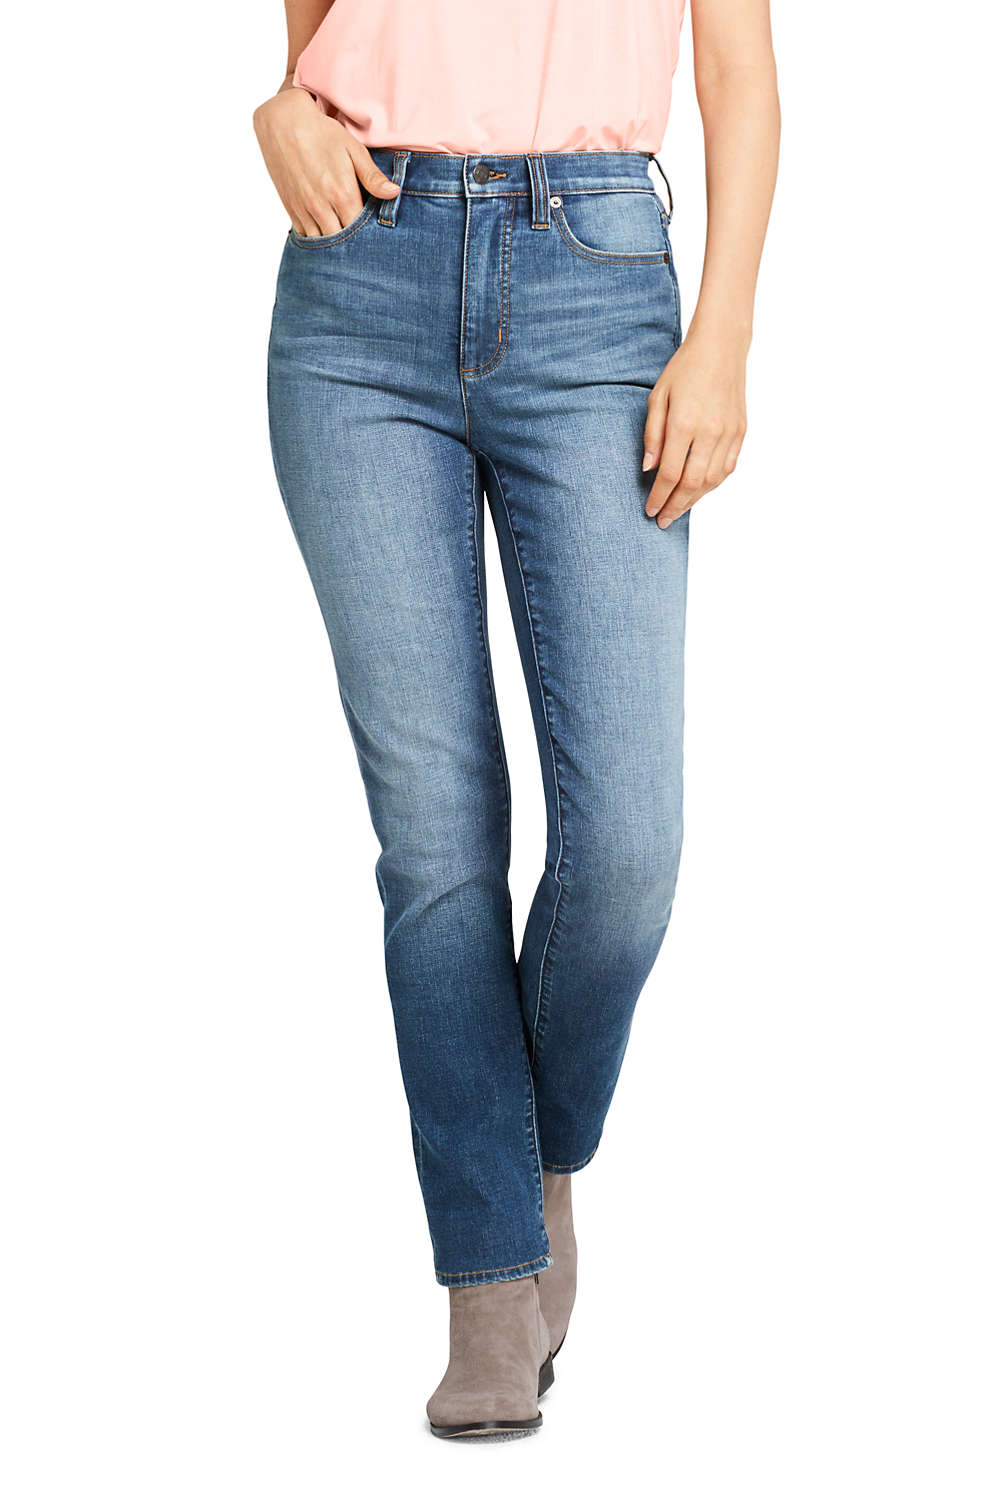 63dee51a9 Women's Slimming High Rise Straight Leg Jeans - Blue from Lands' End